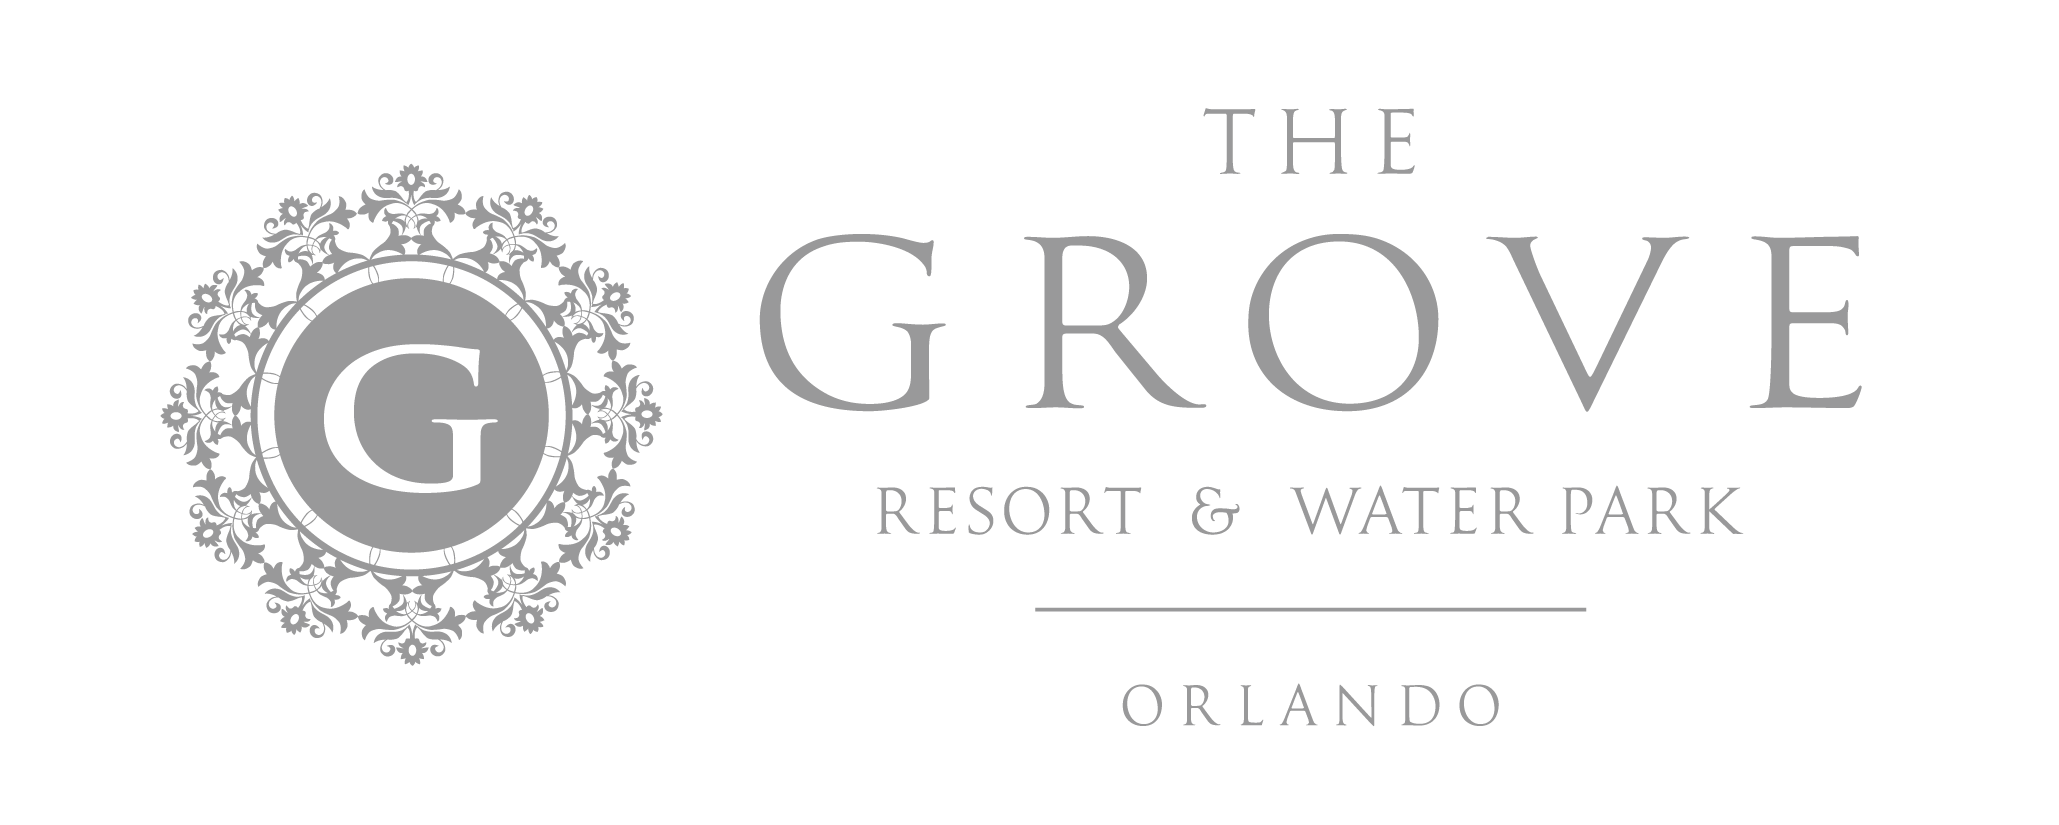 http://investinfloridaevents.com/wp-content/uploads/2019/03/GROVE-LOGO-HORIZONTAL-01.png